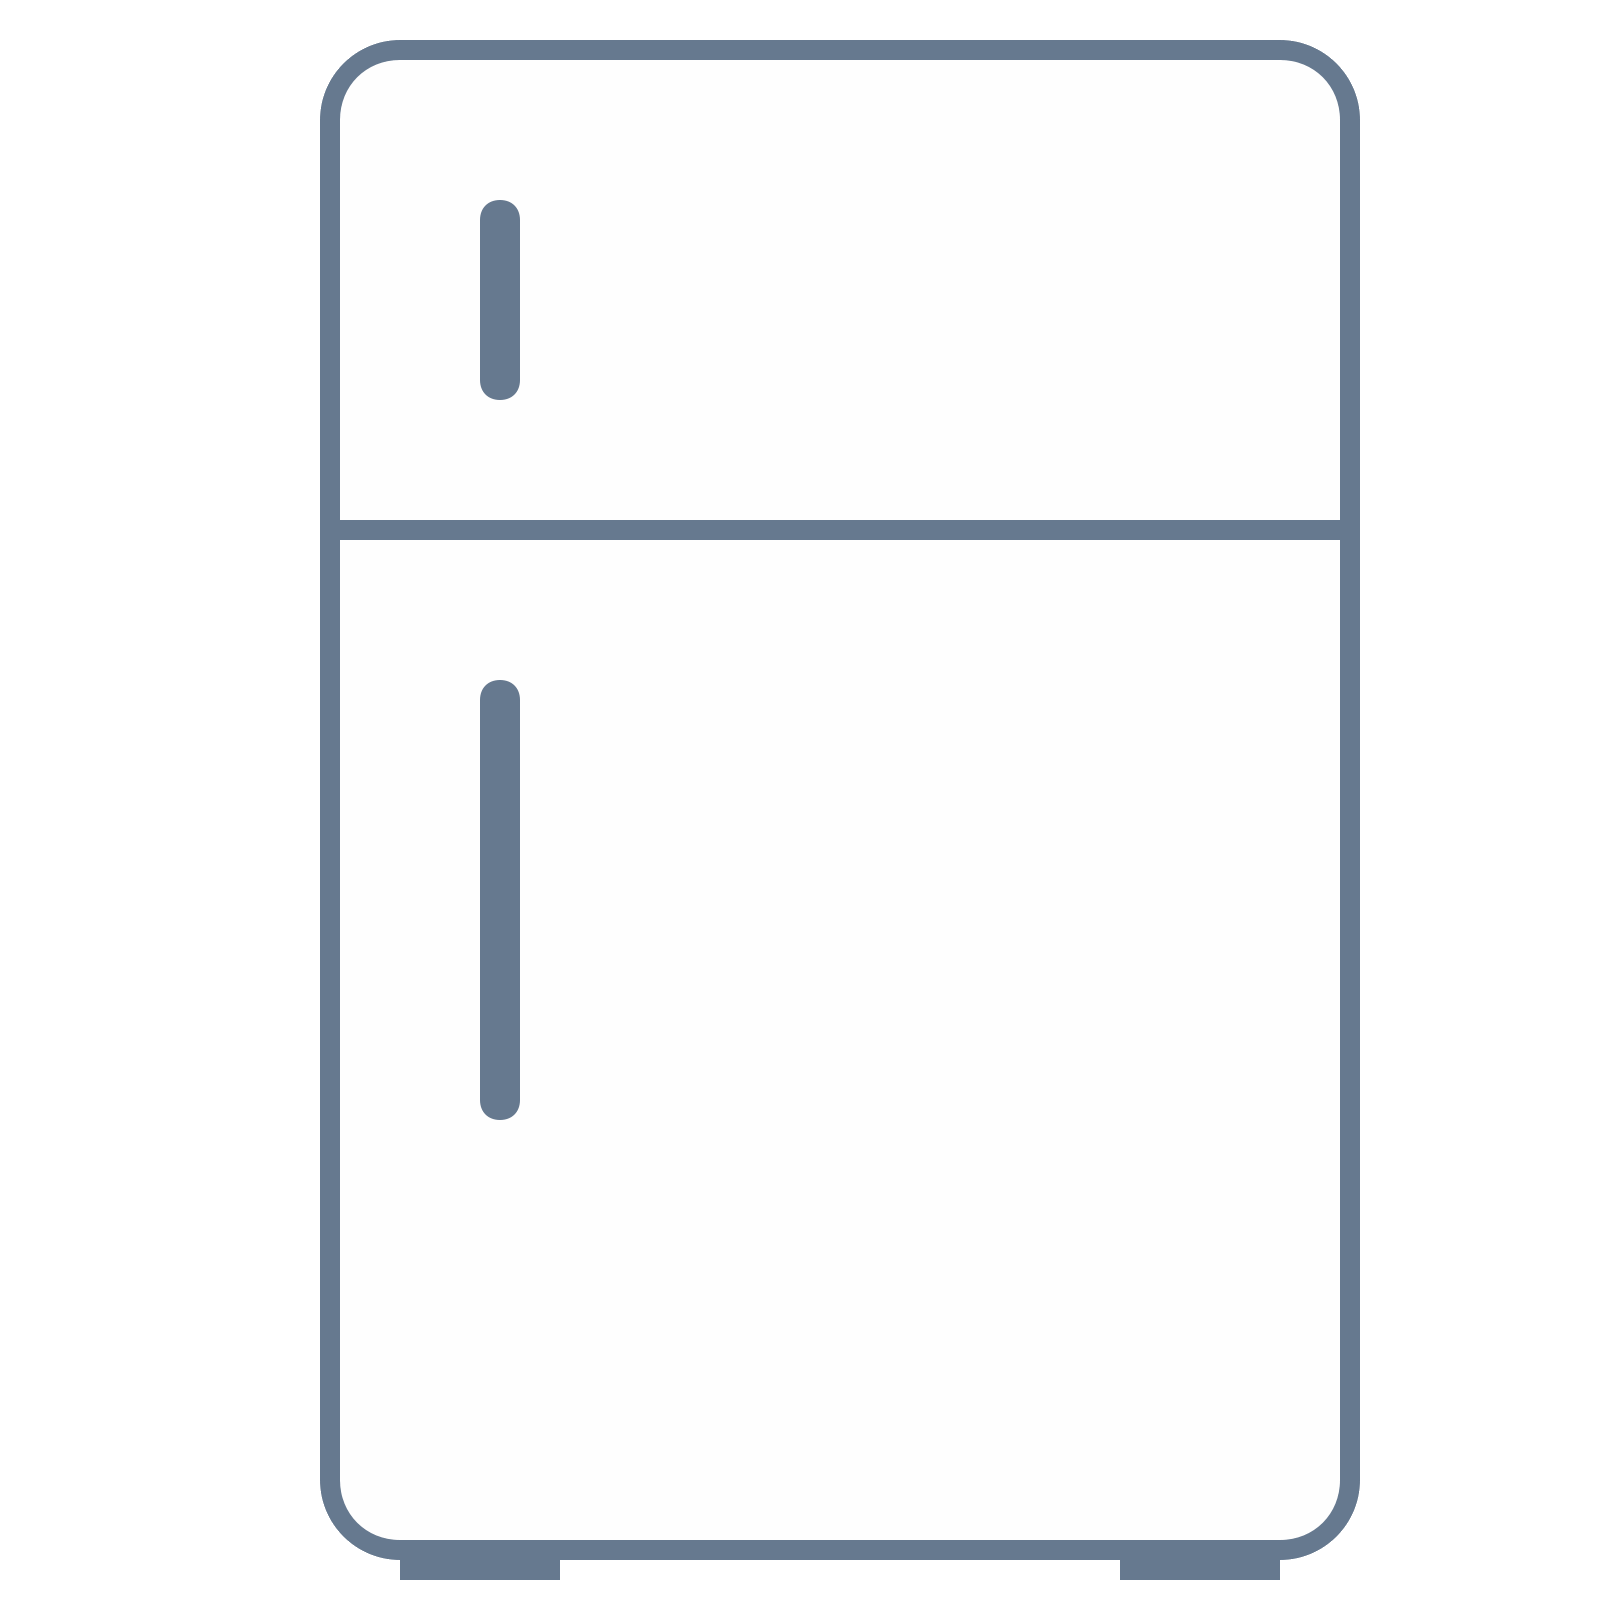 Fridge vector. Icon free download png